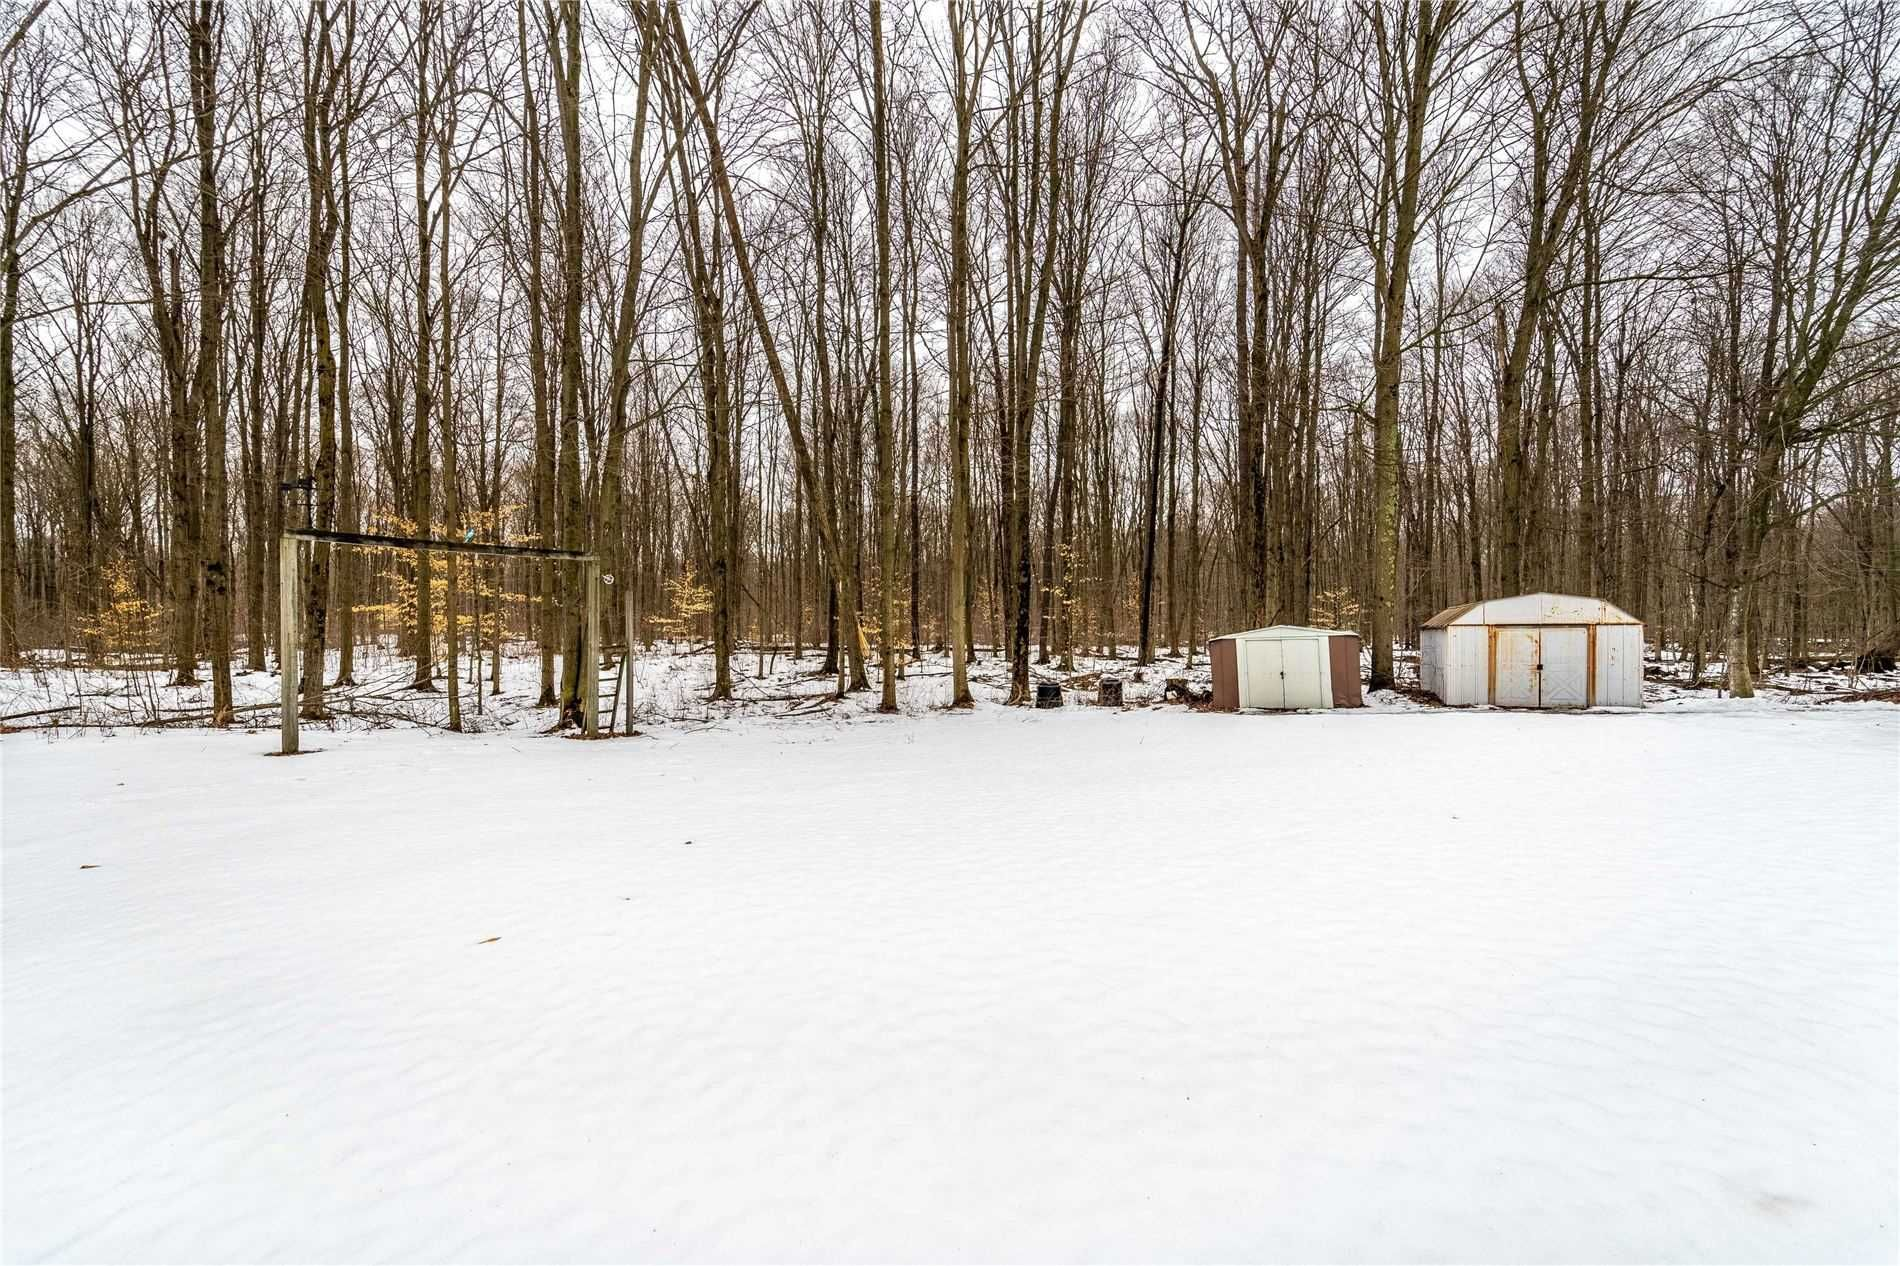 Photo 18: Photos: 918 Windham12 Road in Norfolk: Simcoe House (Bungalow) for sale : MLS®# X4707719